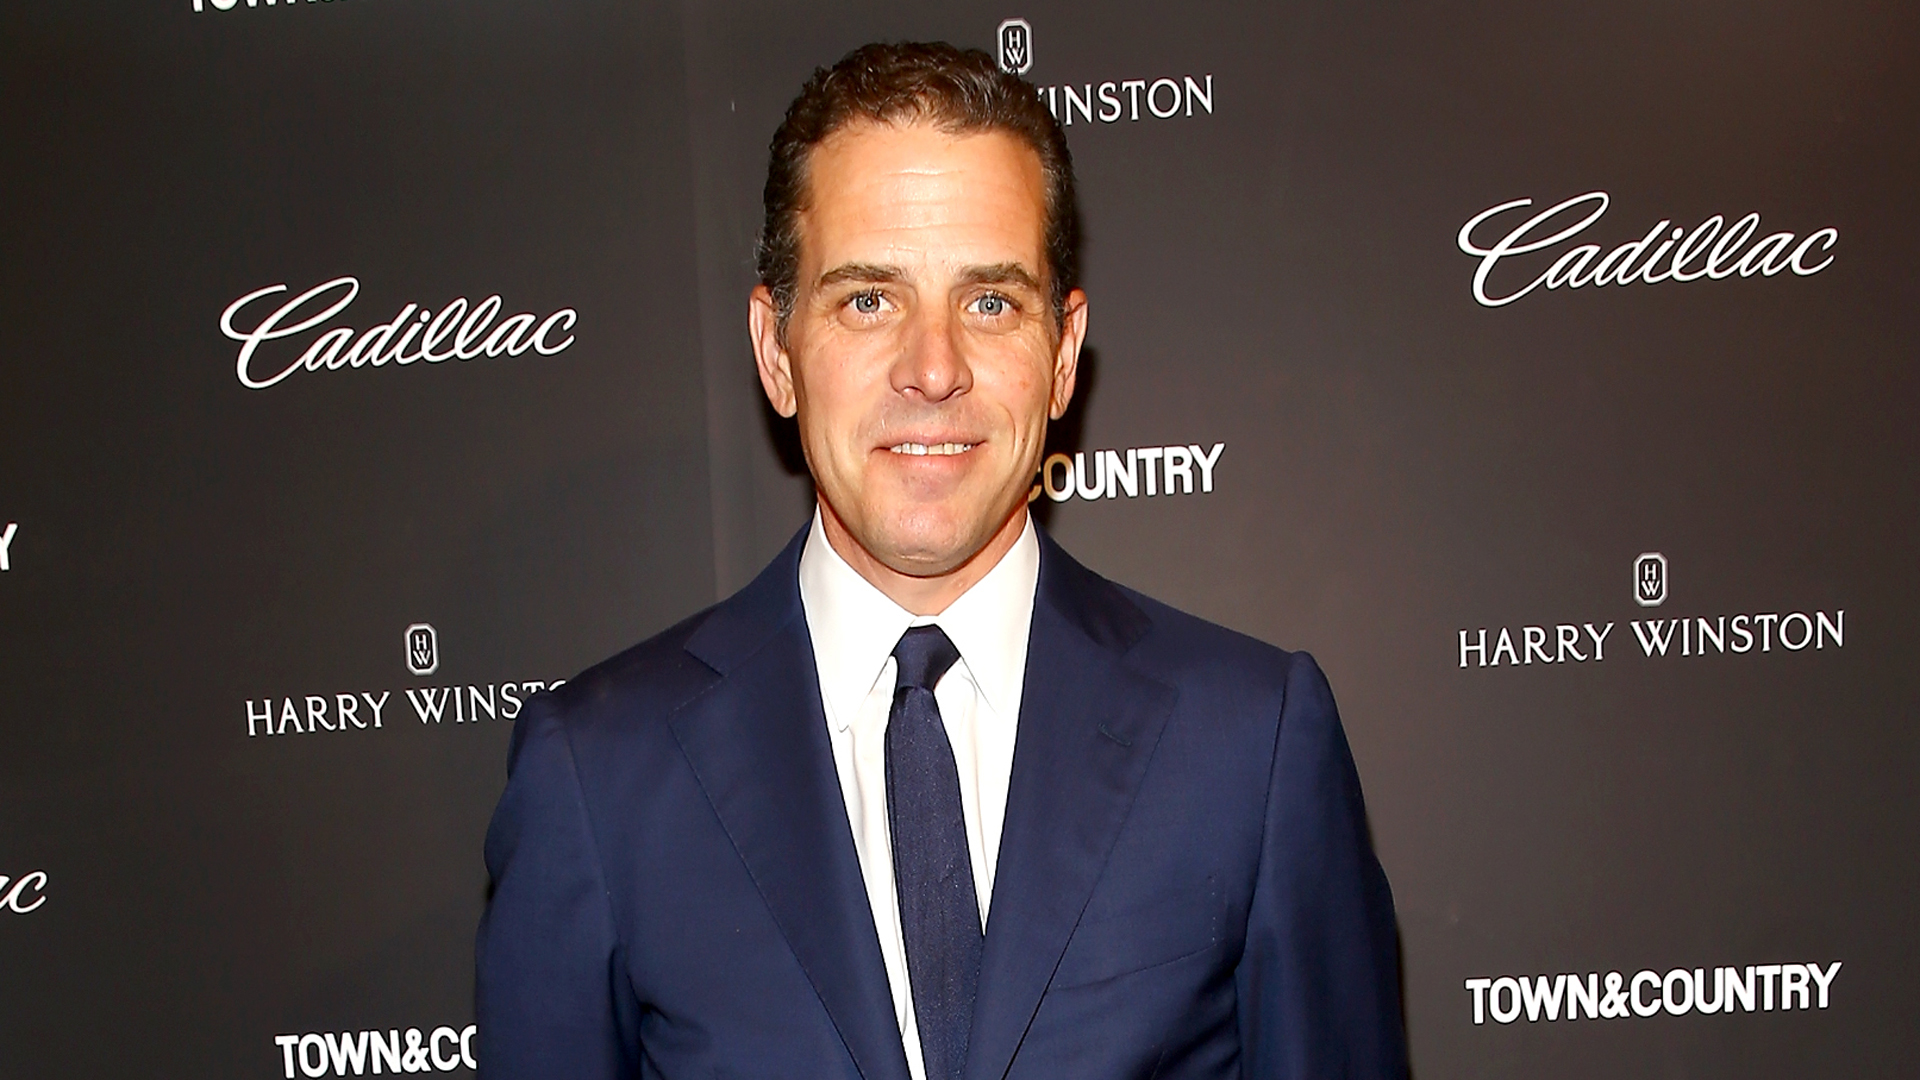 Hunter Biden attends an event on May 28, 2014, in New York City. (Credit: Astrid Stawiarz/Getty Images for Town & Country)